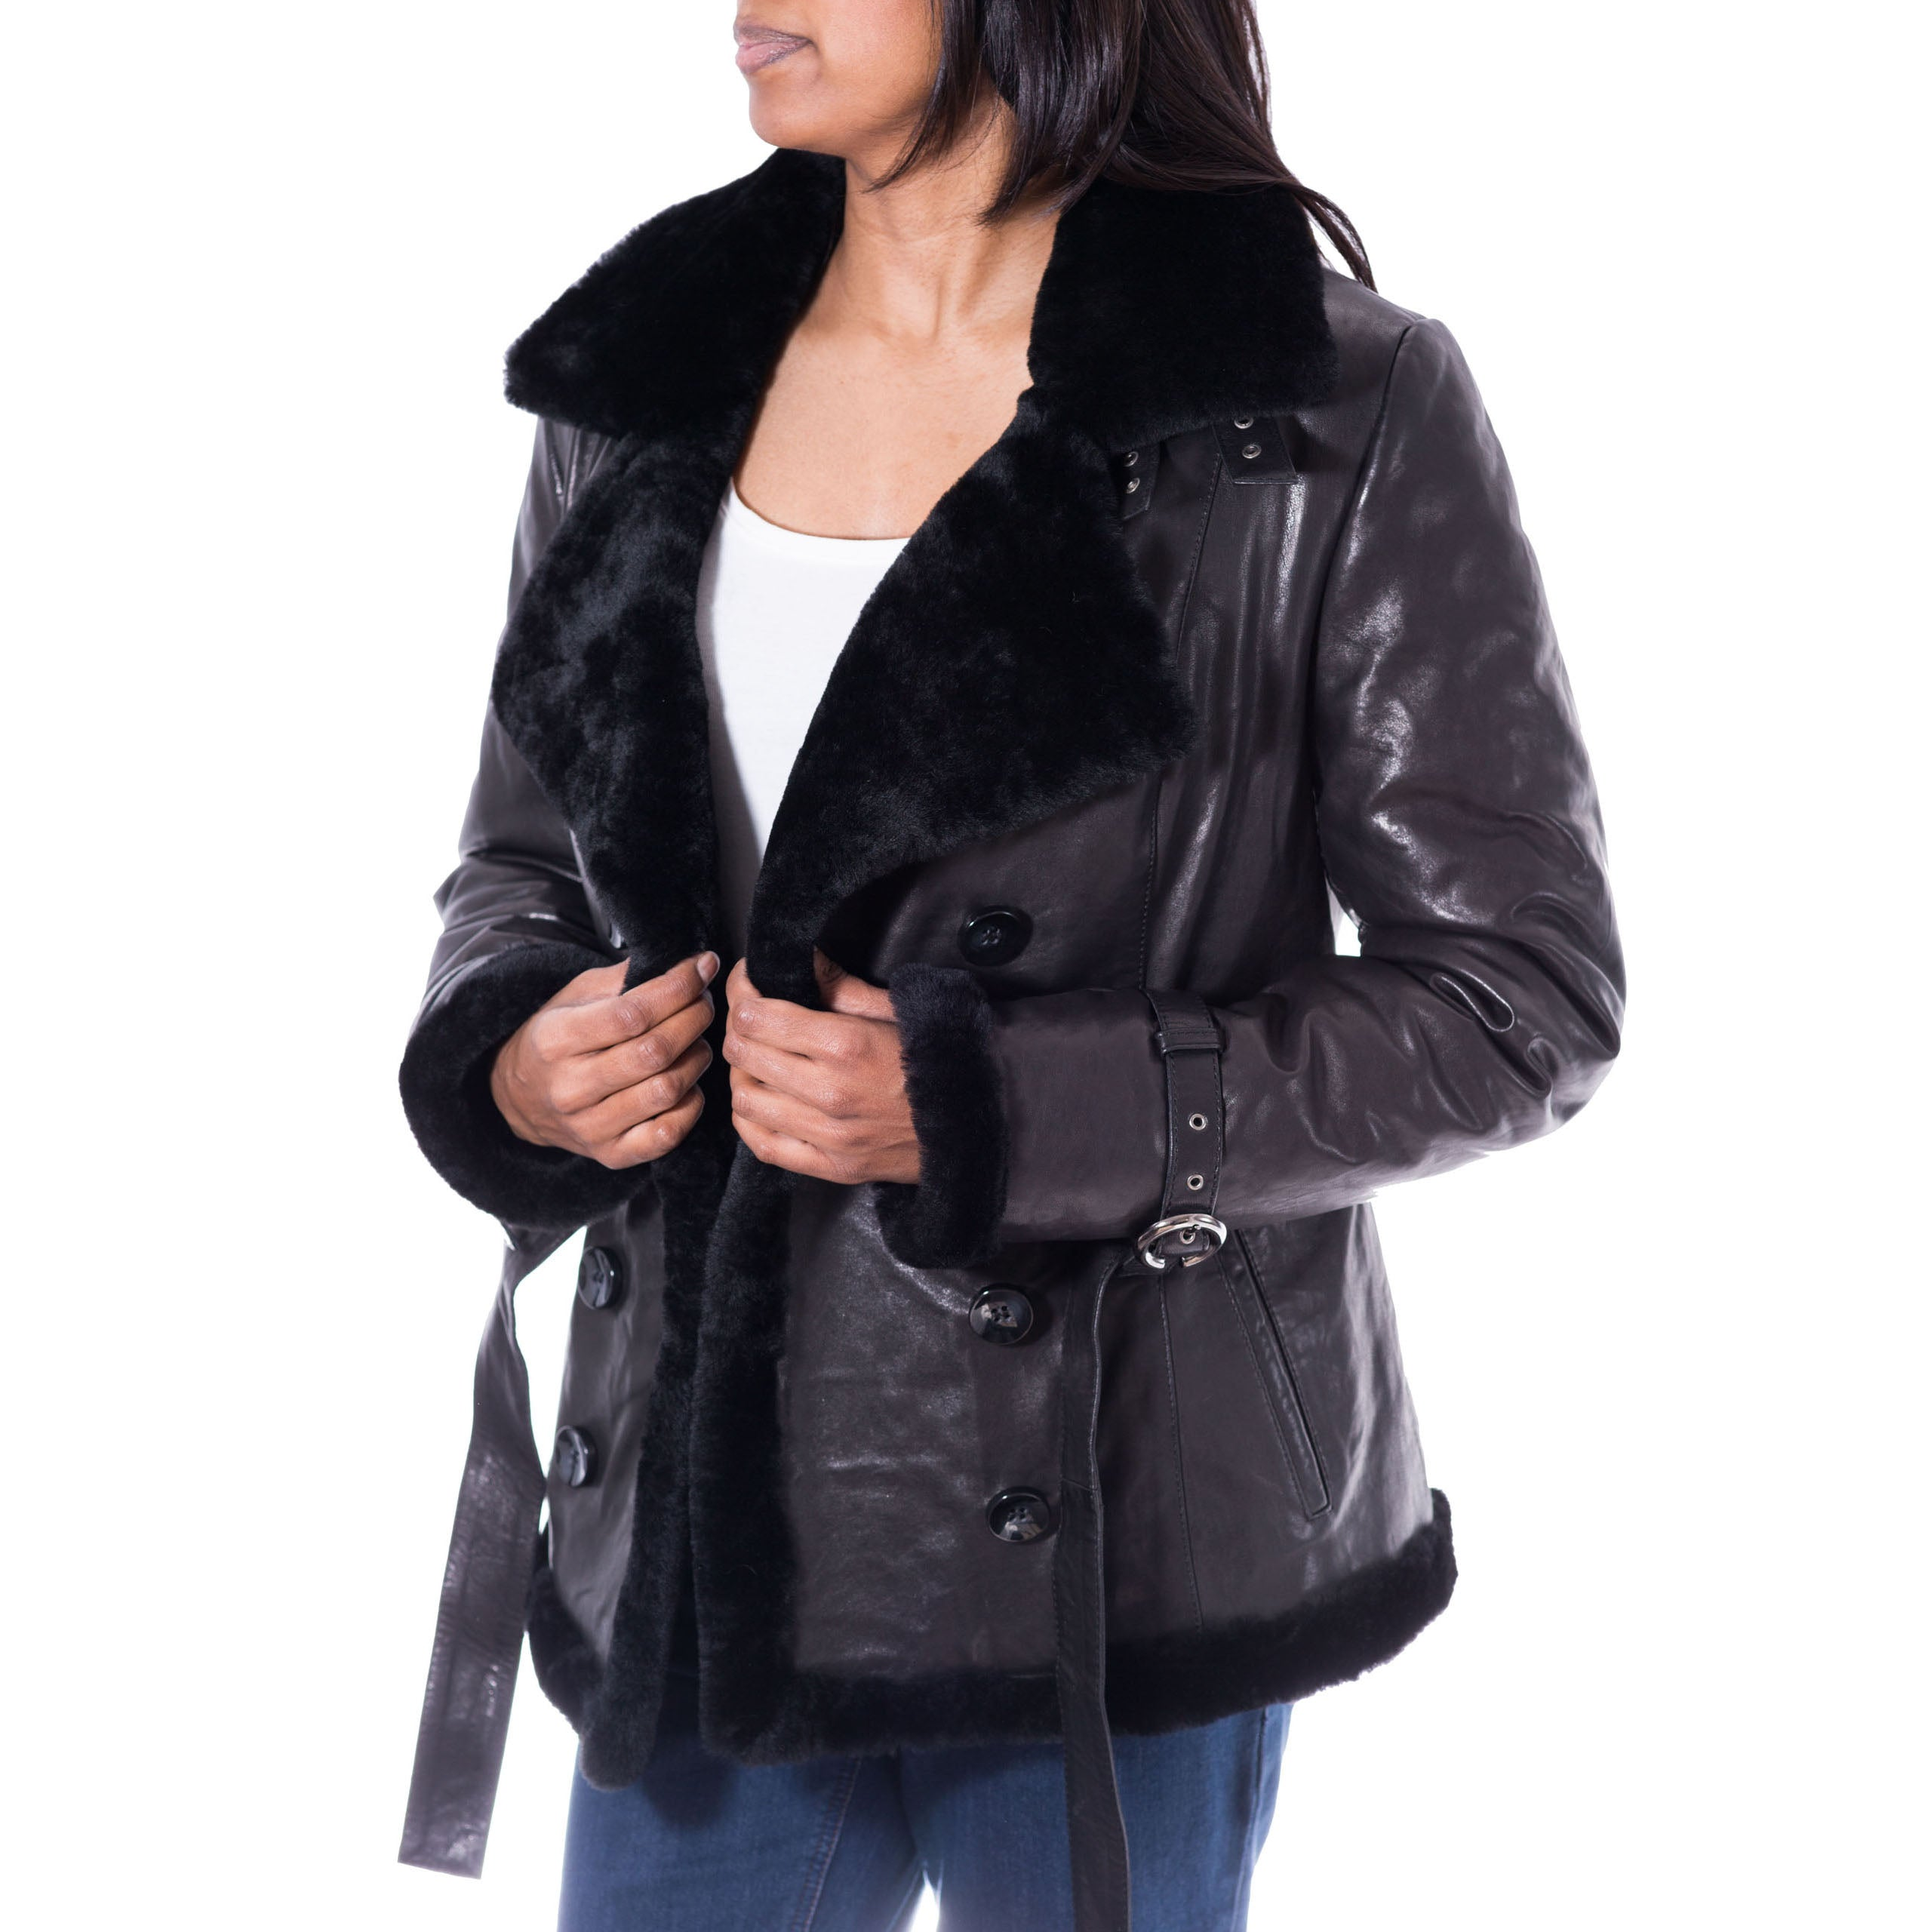 bea4f9594e3 Womens shearling sheepskin double breasted pea coat with belt tie ...